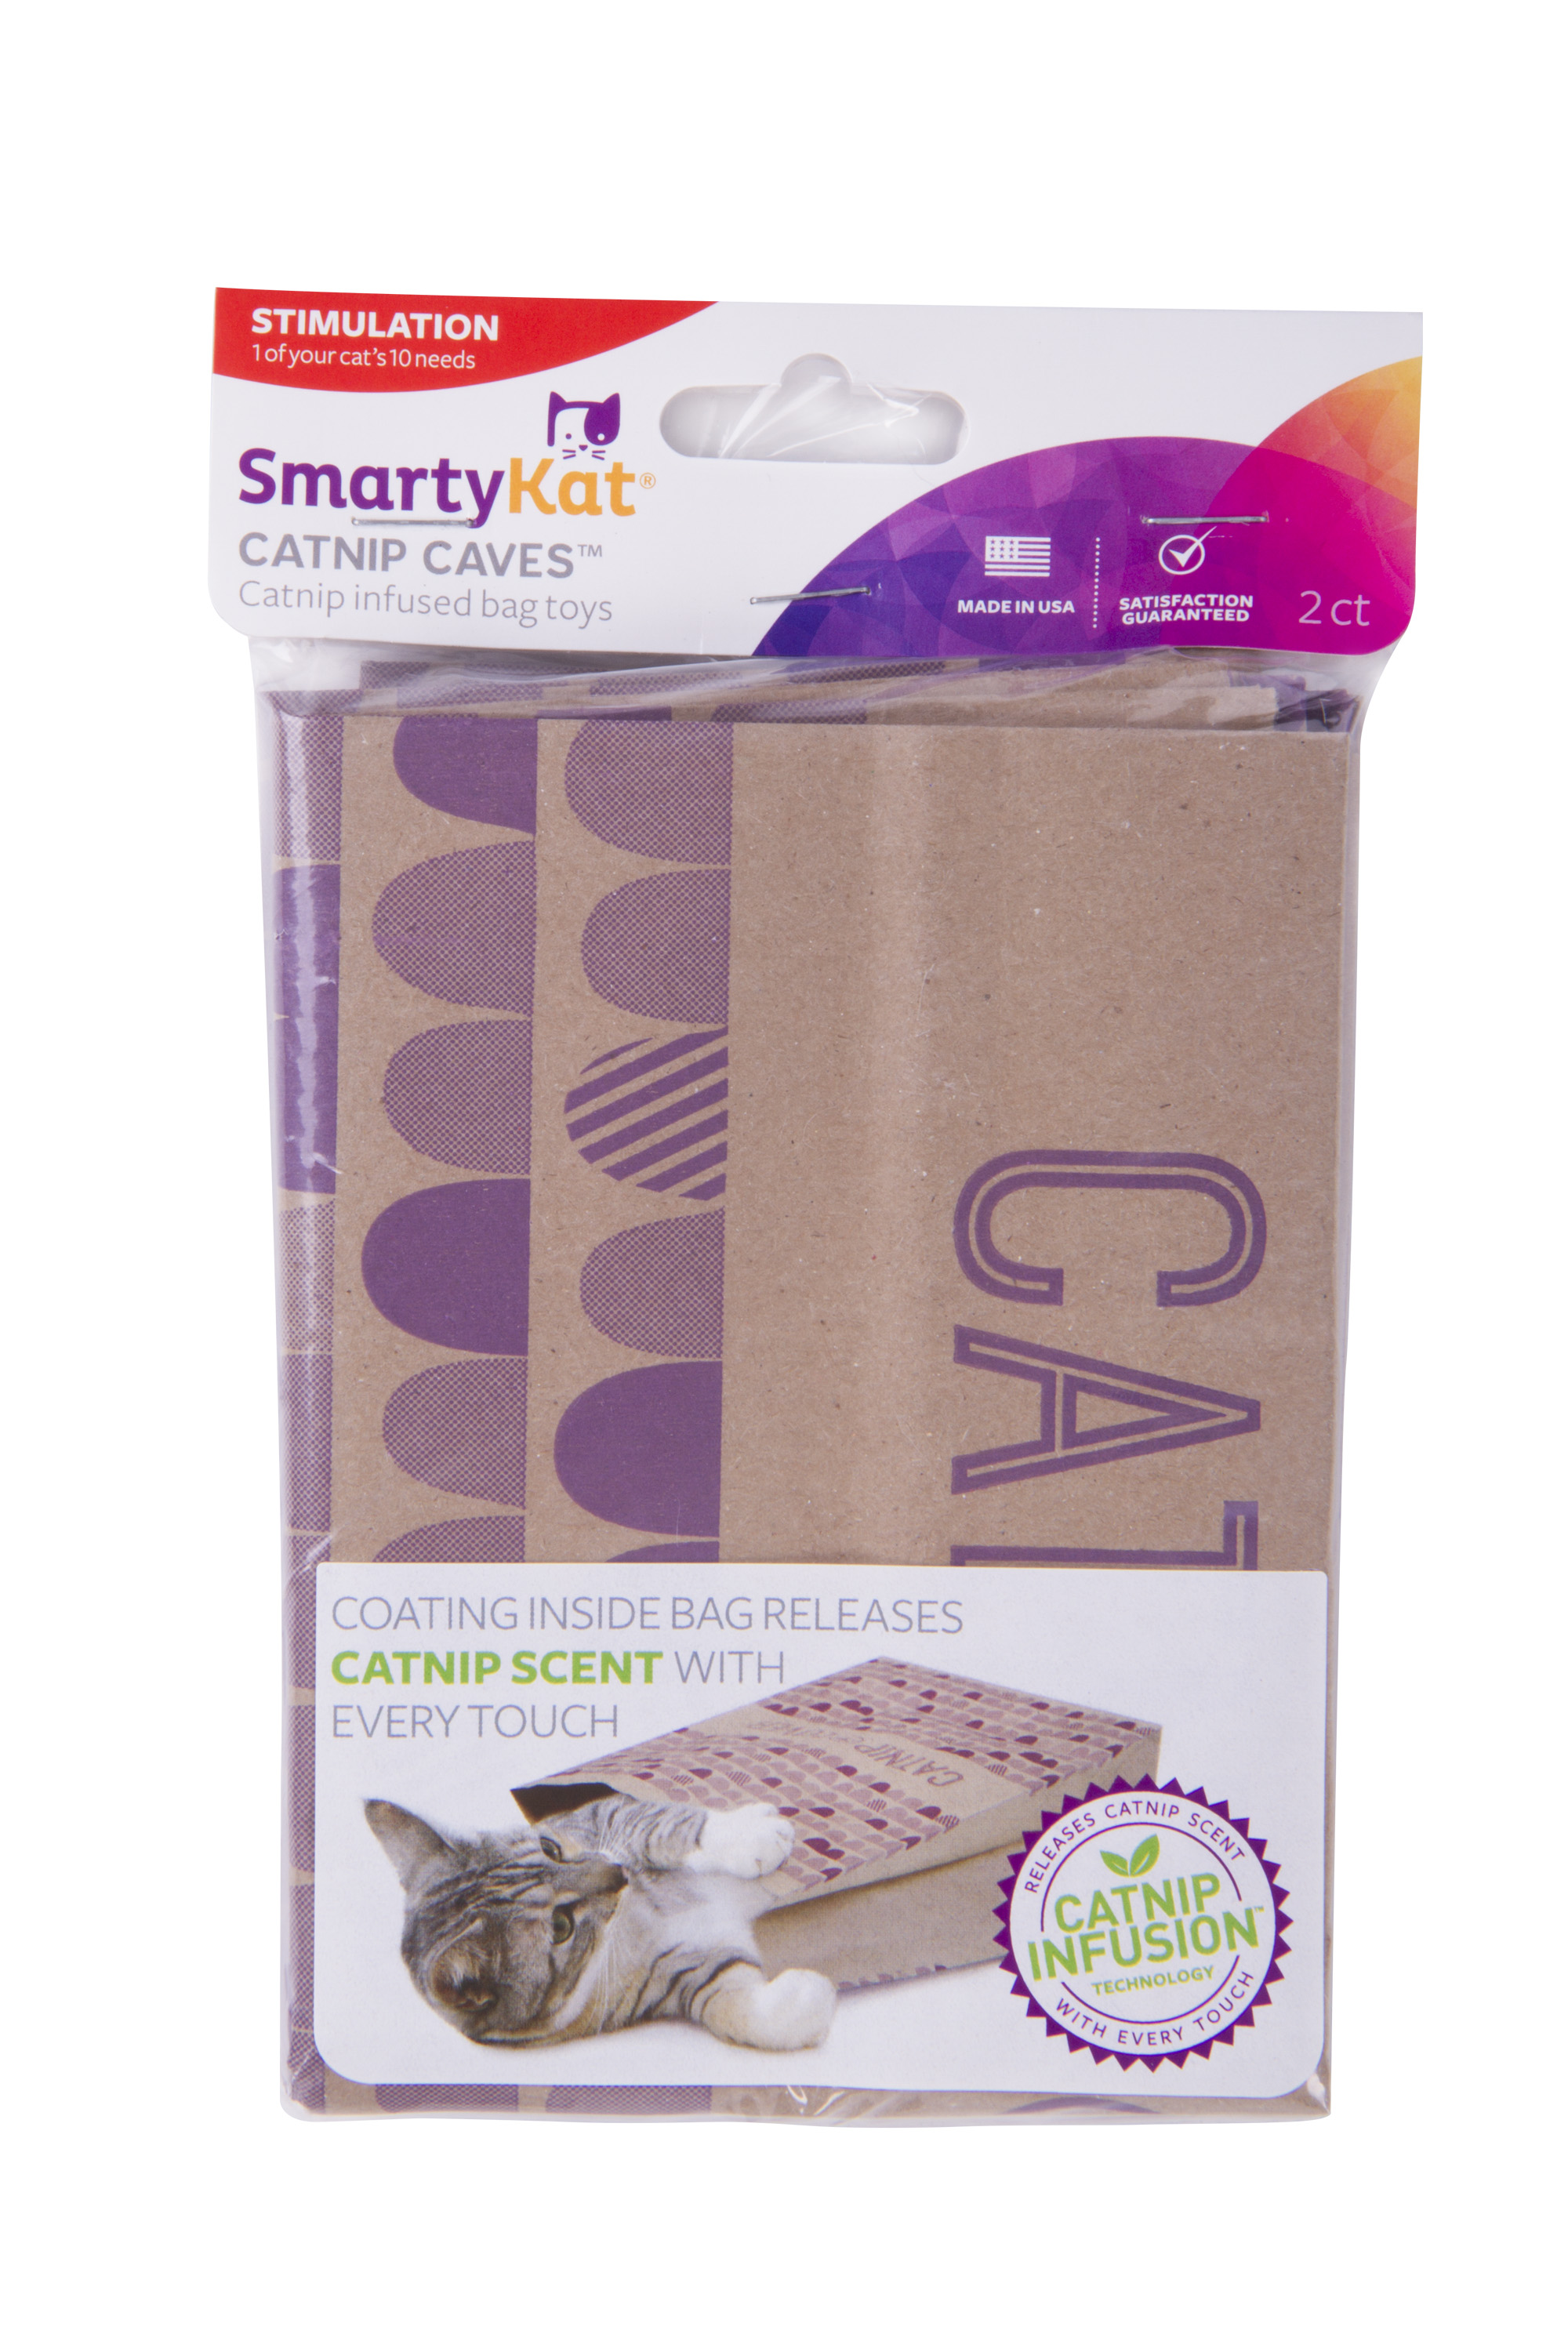 SmartyKat Cat Caves Catnip Infused Paper Bags, Set of 2 by Worldwise